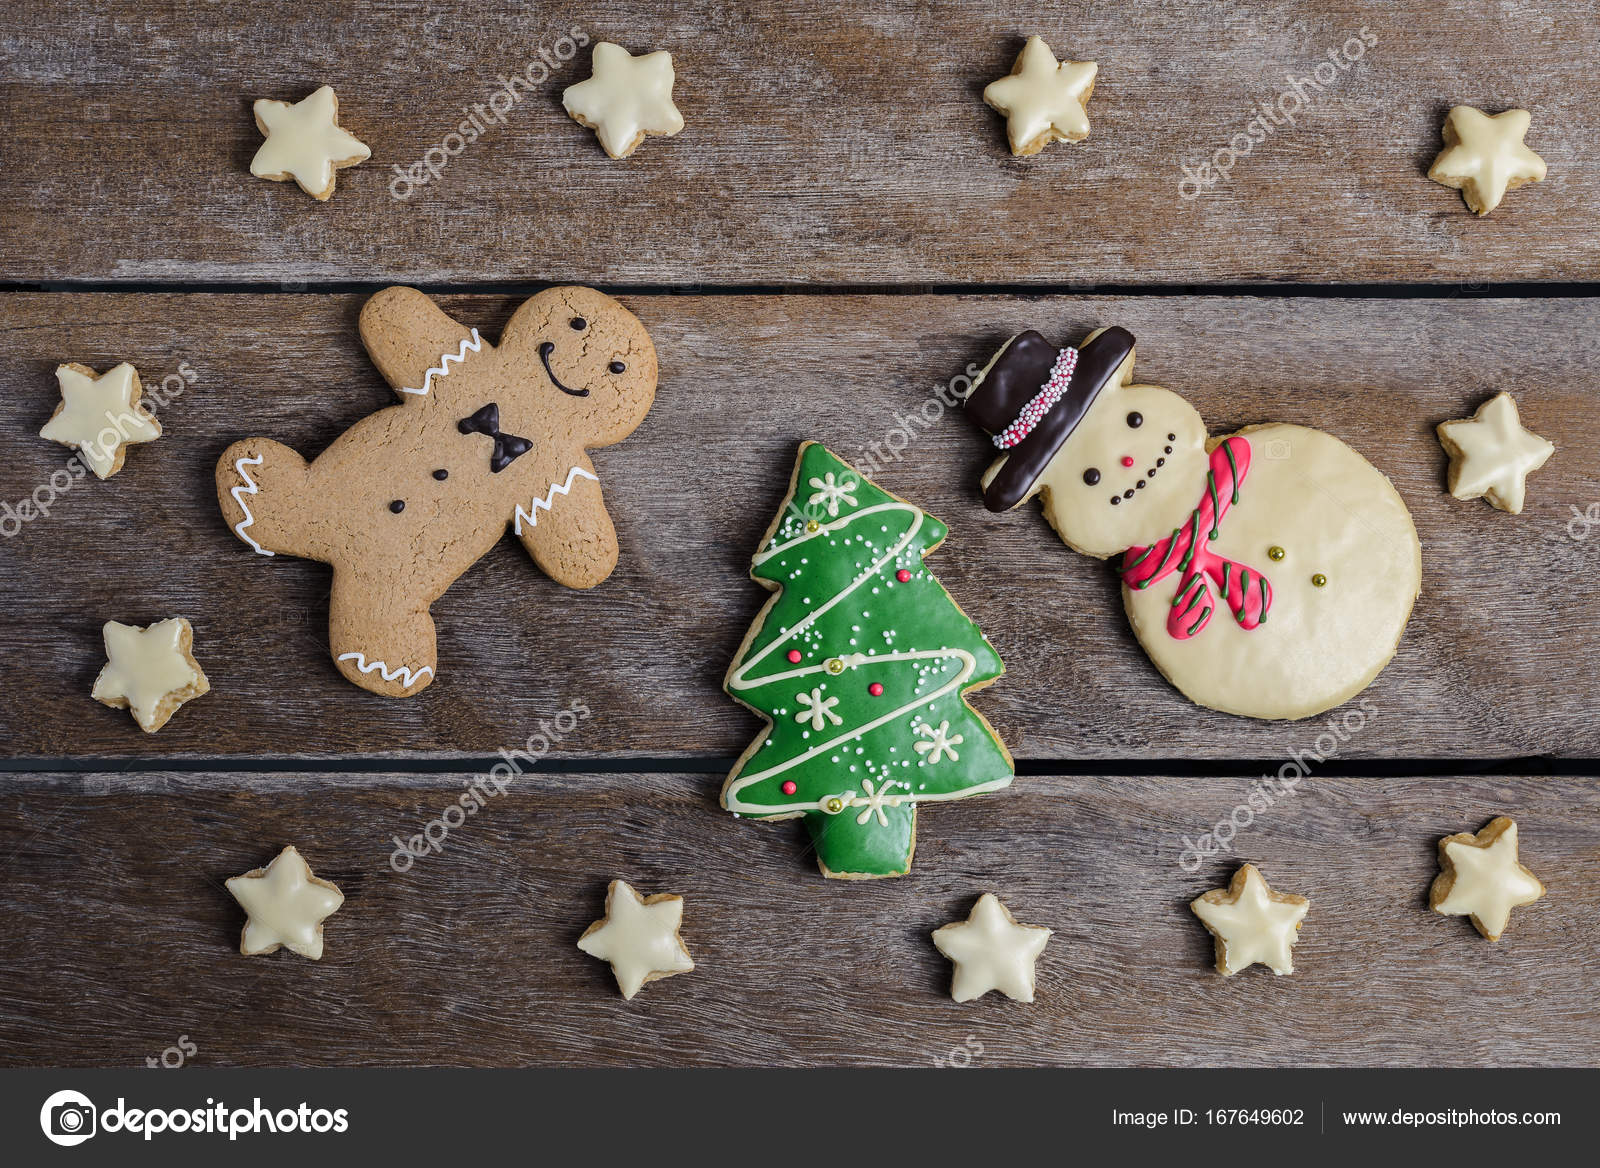 Festive Christmas Cookie And New Year In The Shape Of Christmas